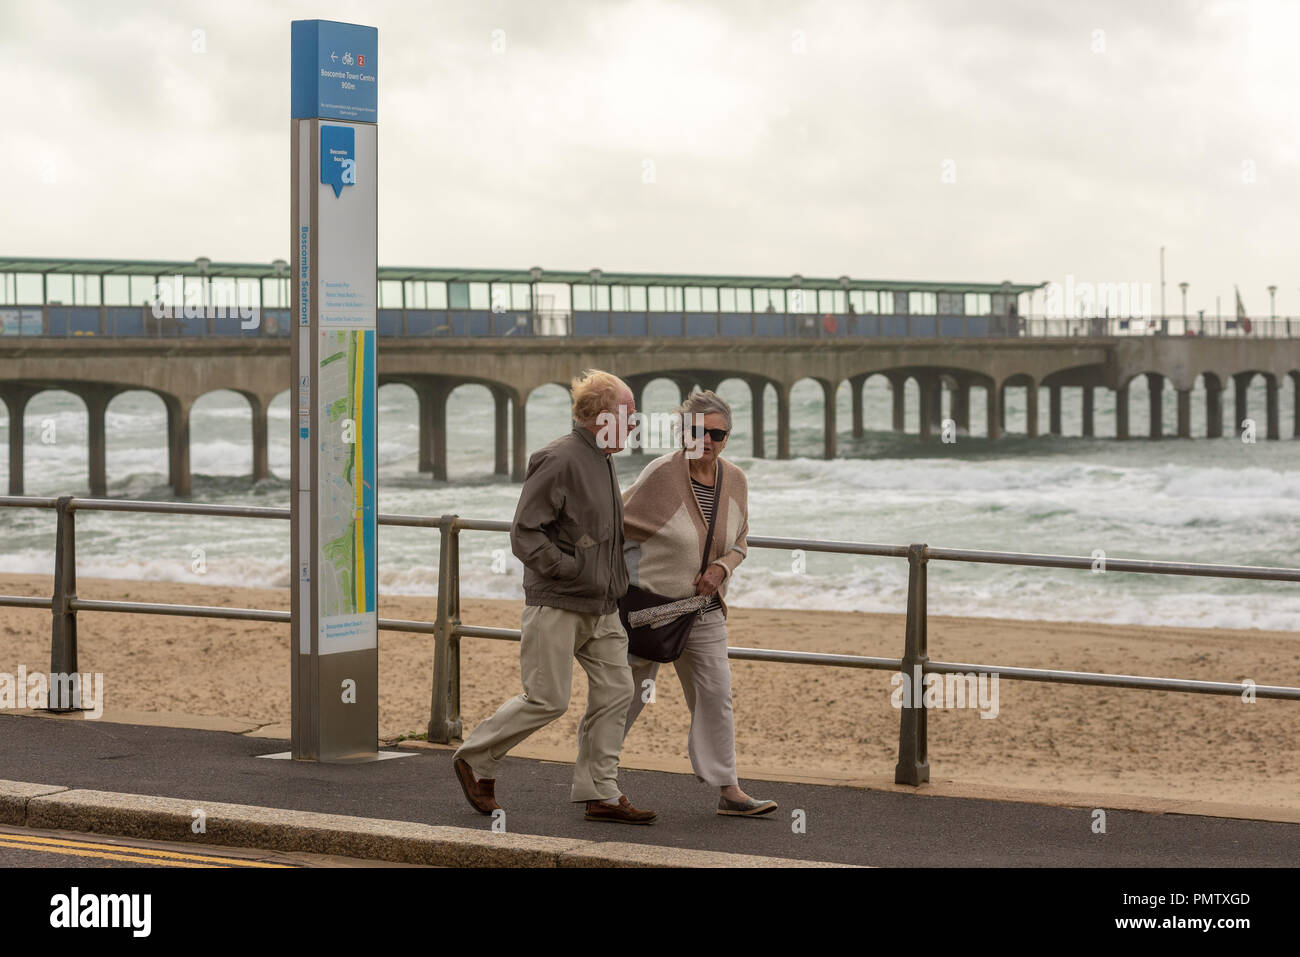 Boscombe, Bournemouth, Dorset, England, UK, September 2018, Weather: Storm Ali, the first named storm of the autumn, brings strong winds gusting to over 50mph to the south coast early afternoon. A couple walking along the promenade are blown by the wind. - Stock Image